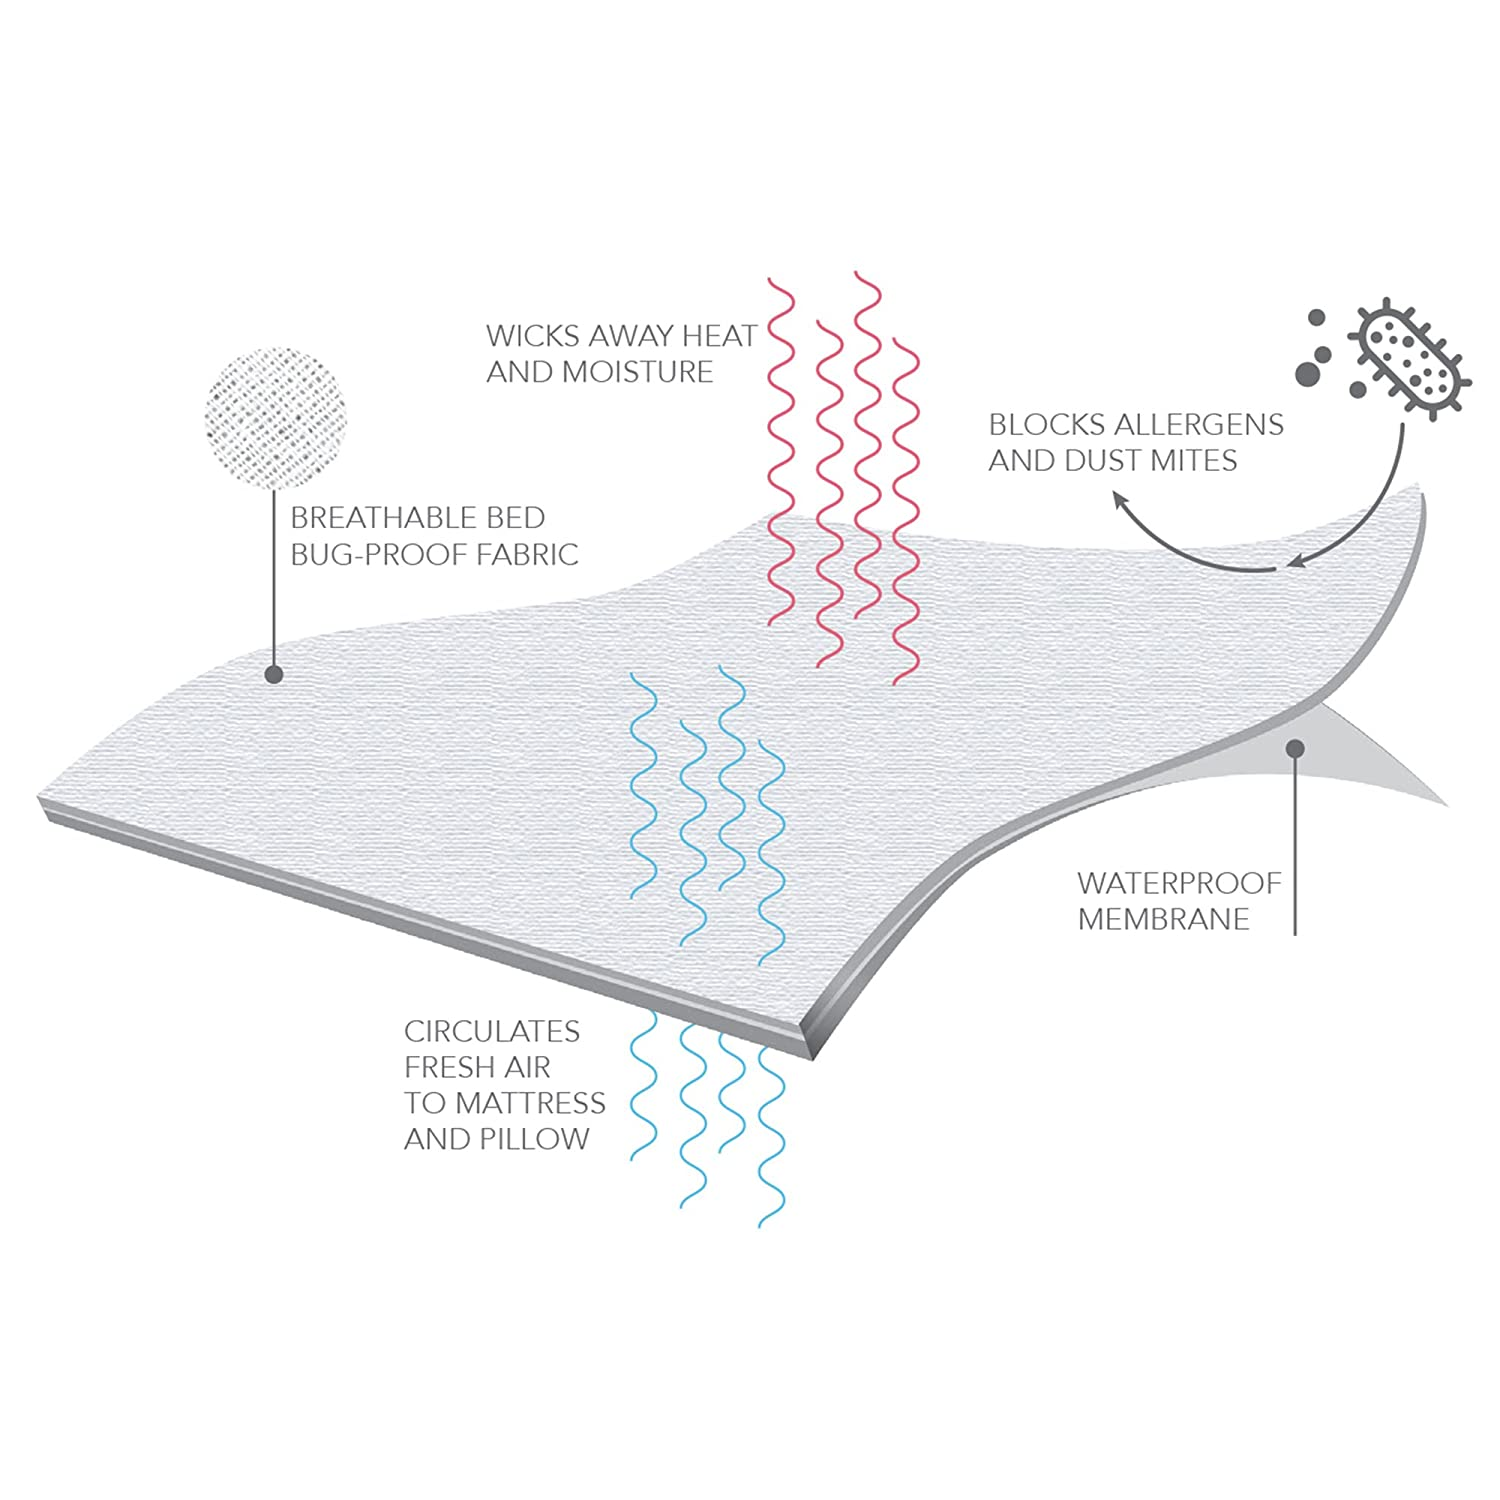 Full White QP0109 Fashion Bed Group Sleep Calm 9-Inch Mattress Encasement with Stain and Bed Bug Defense